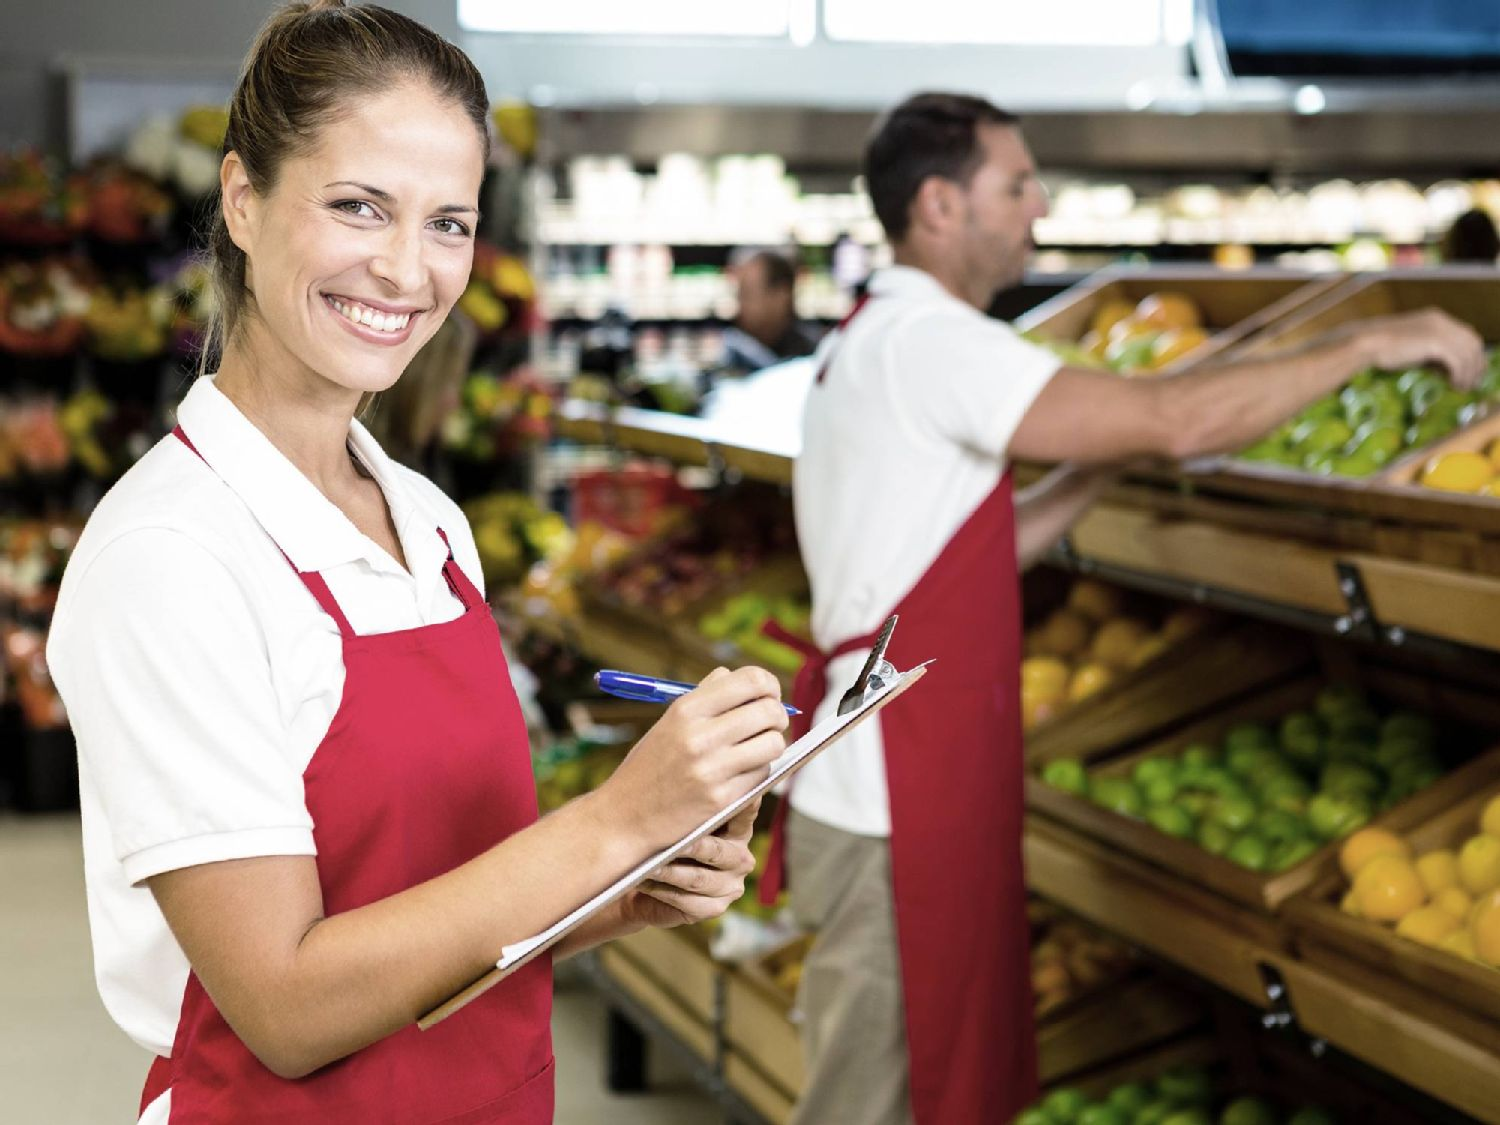 Solutions for Retail Chains